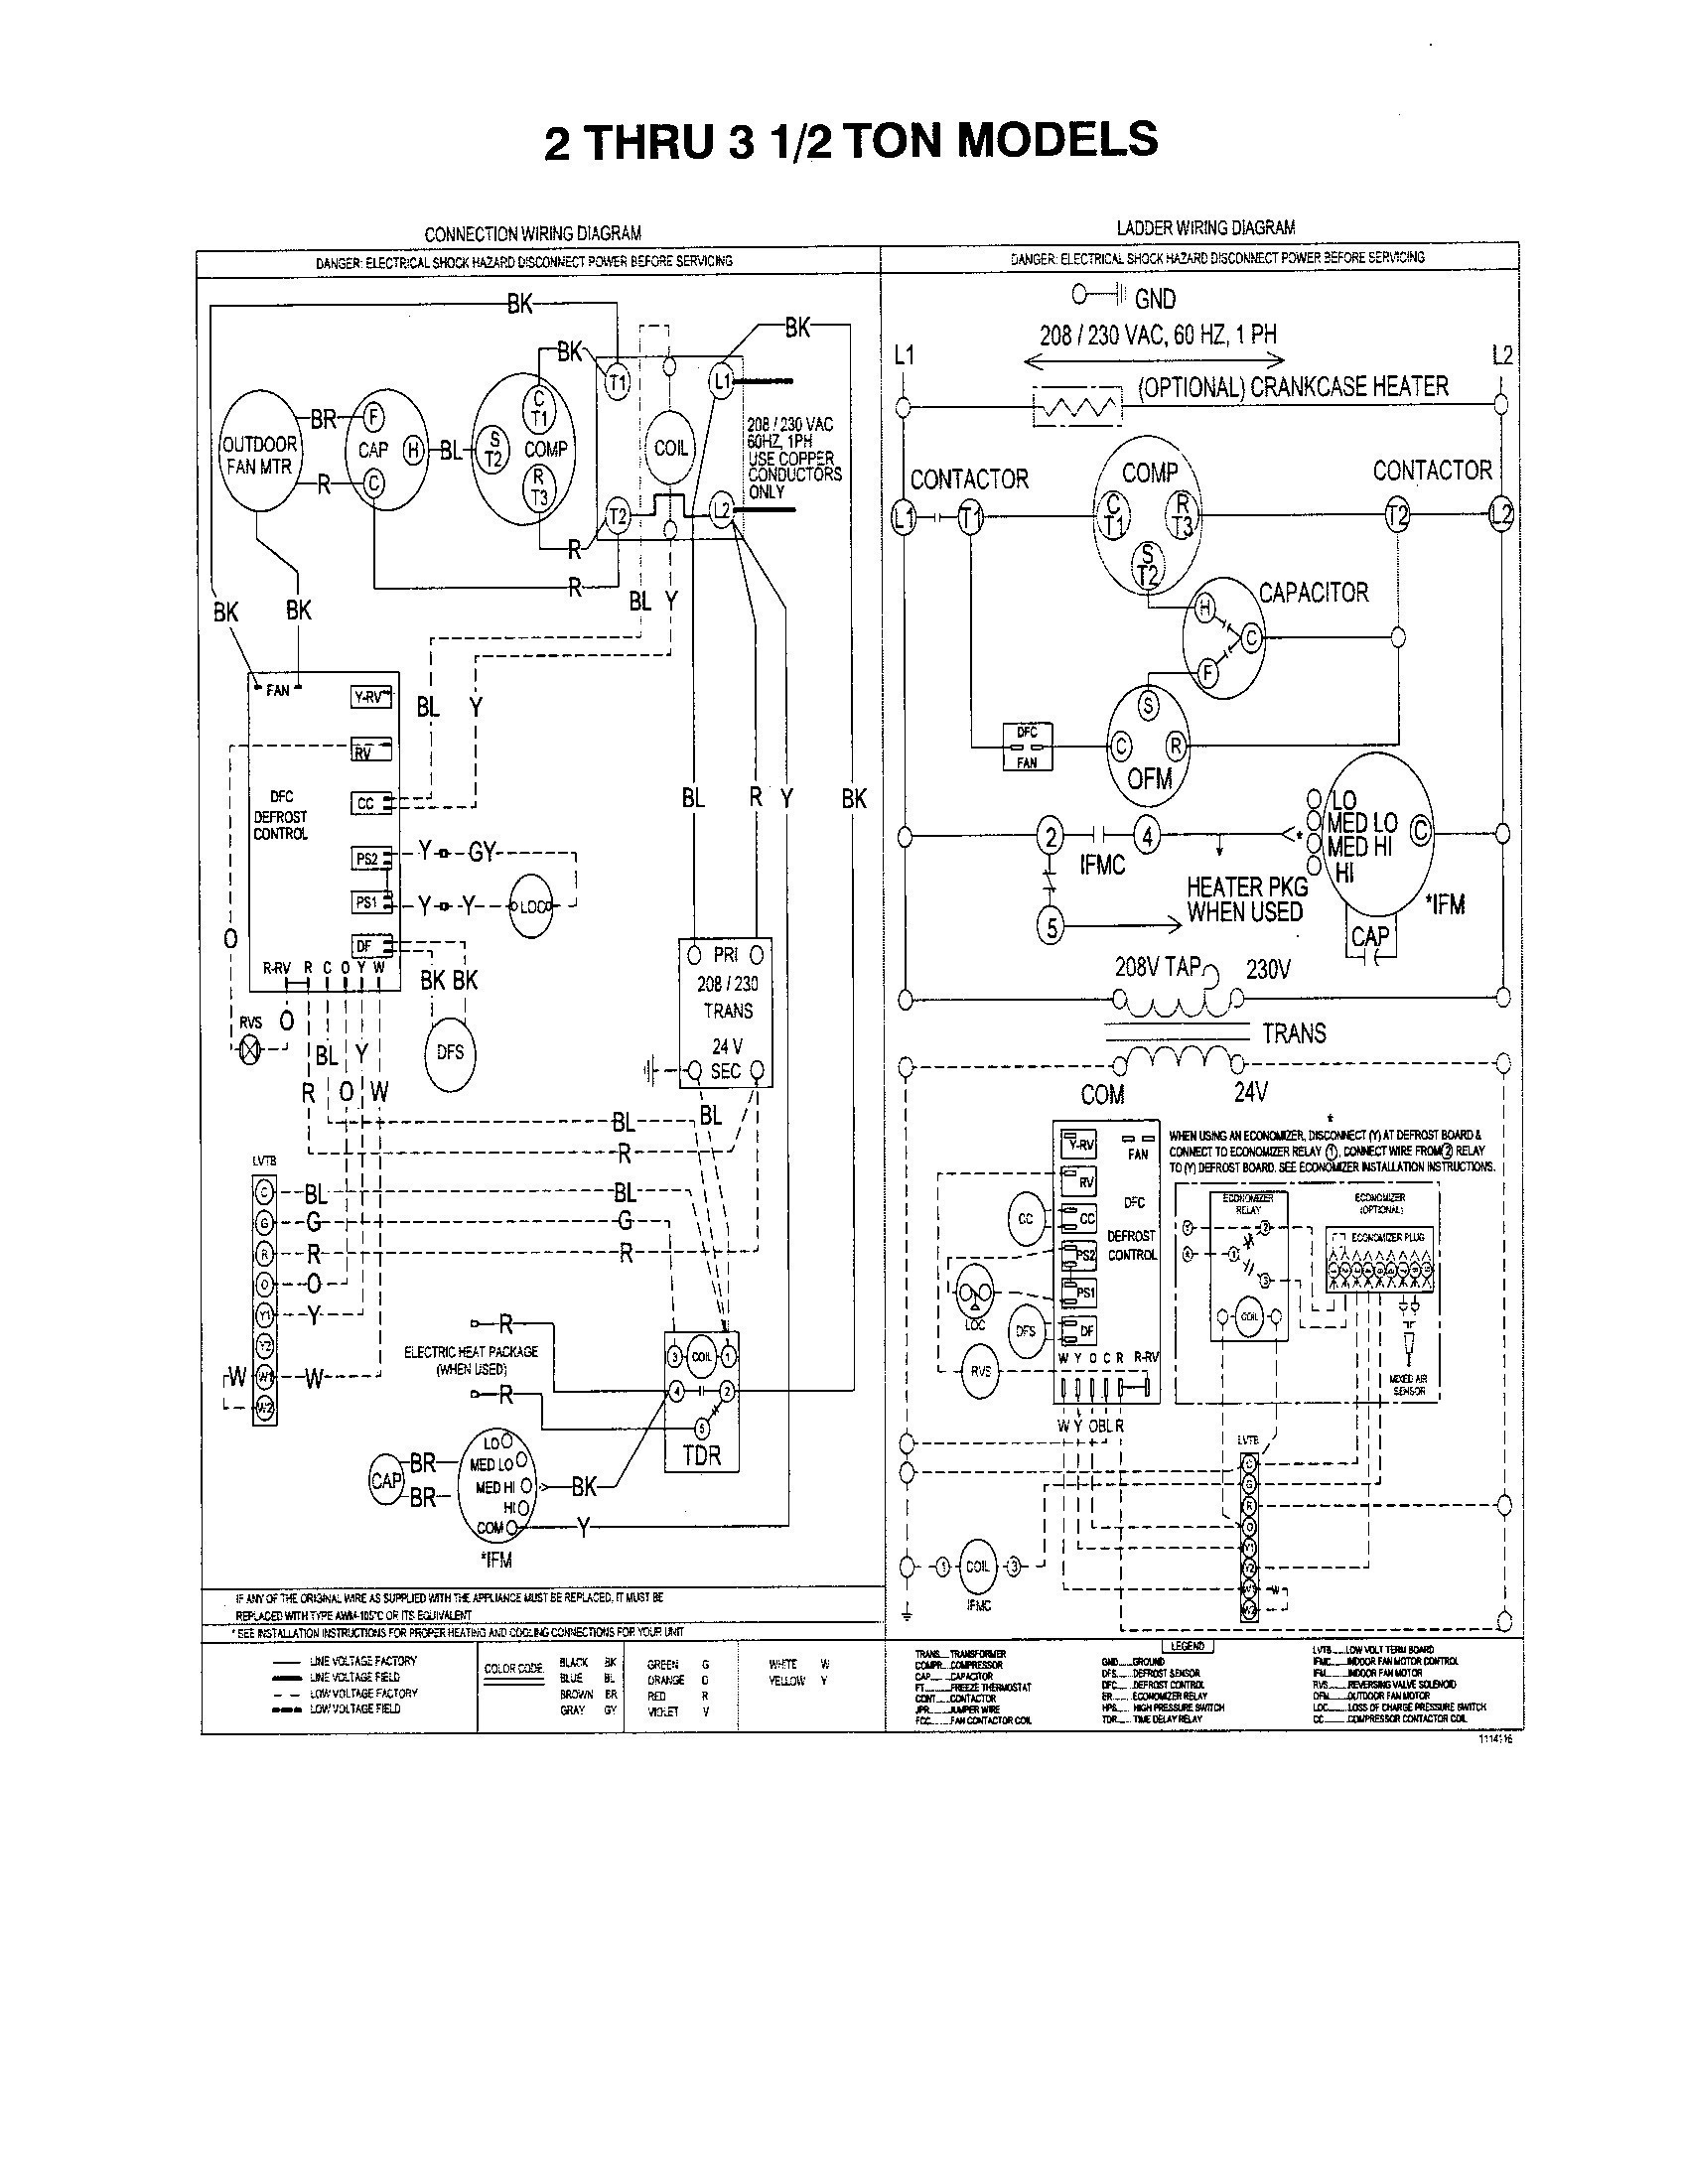 1976 model toyota electrical wiring diagram contains electrical wiring diagrams for the 1976 corolla celica corona corona mark ii pickup and landcruiser destined for the us and canada